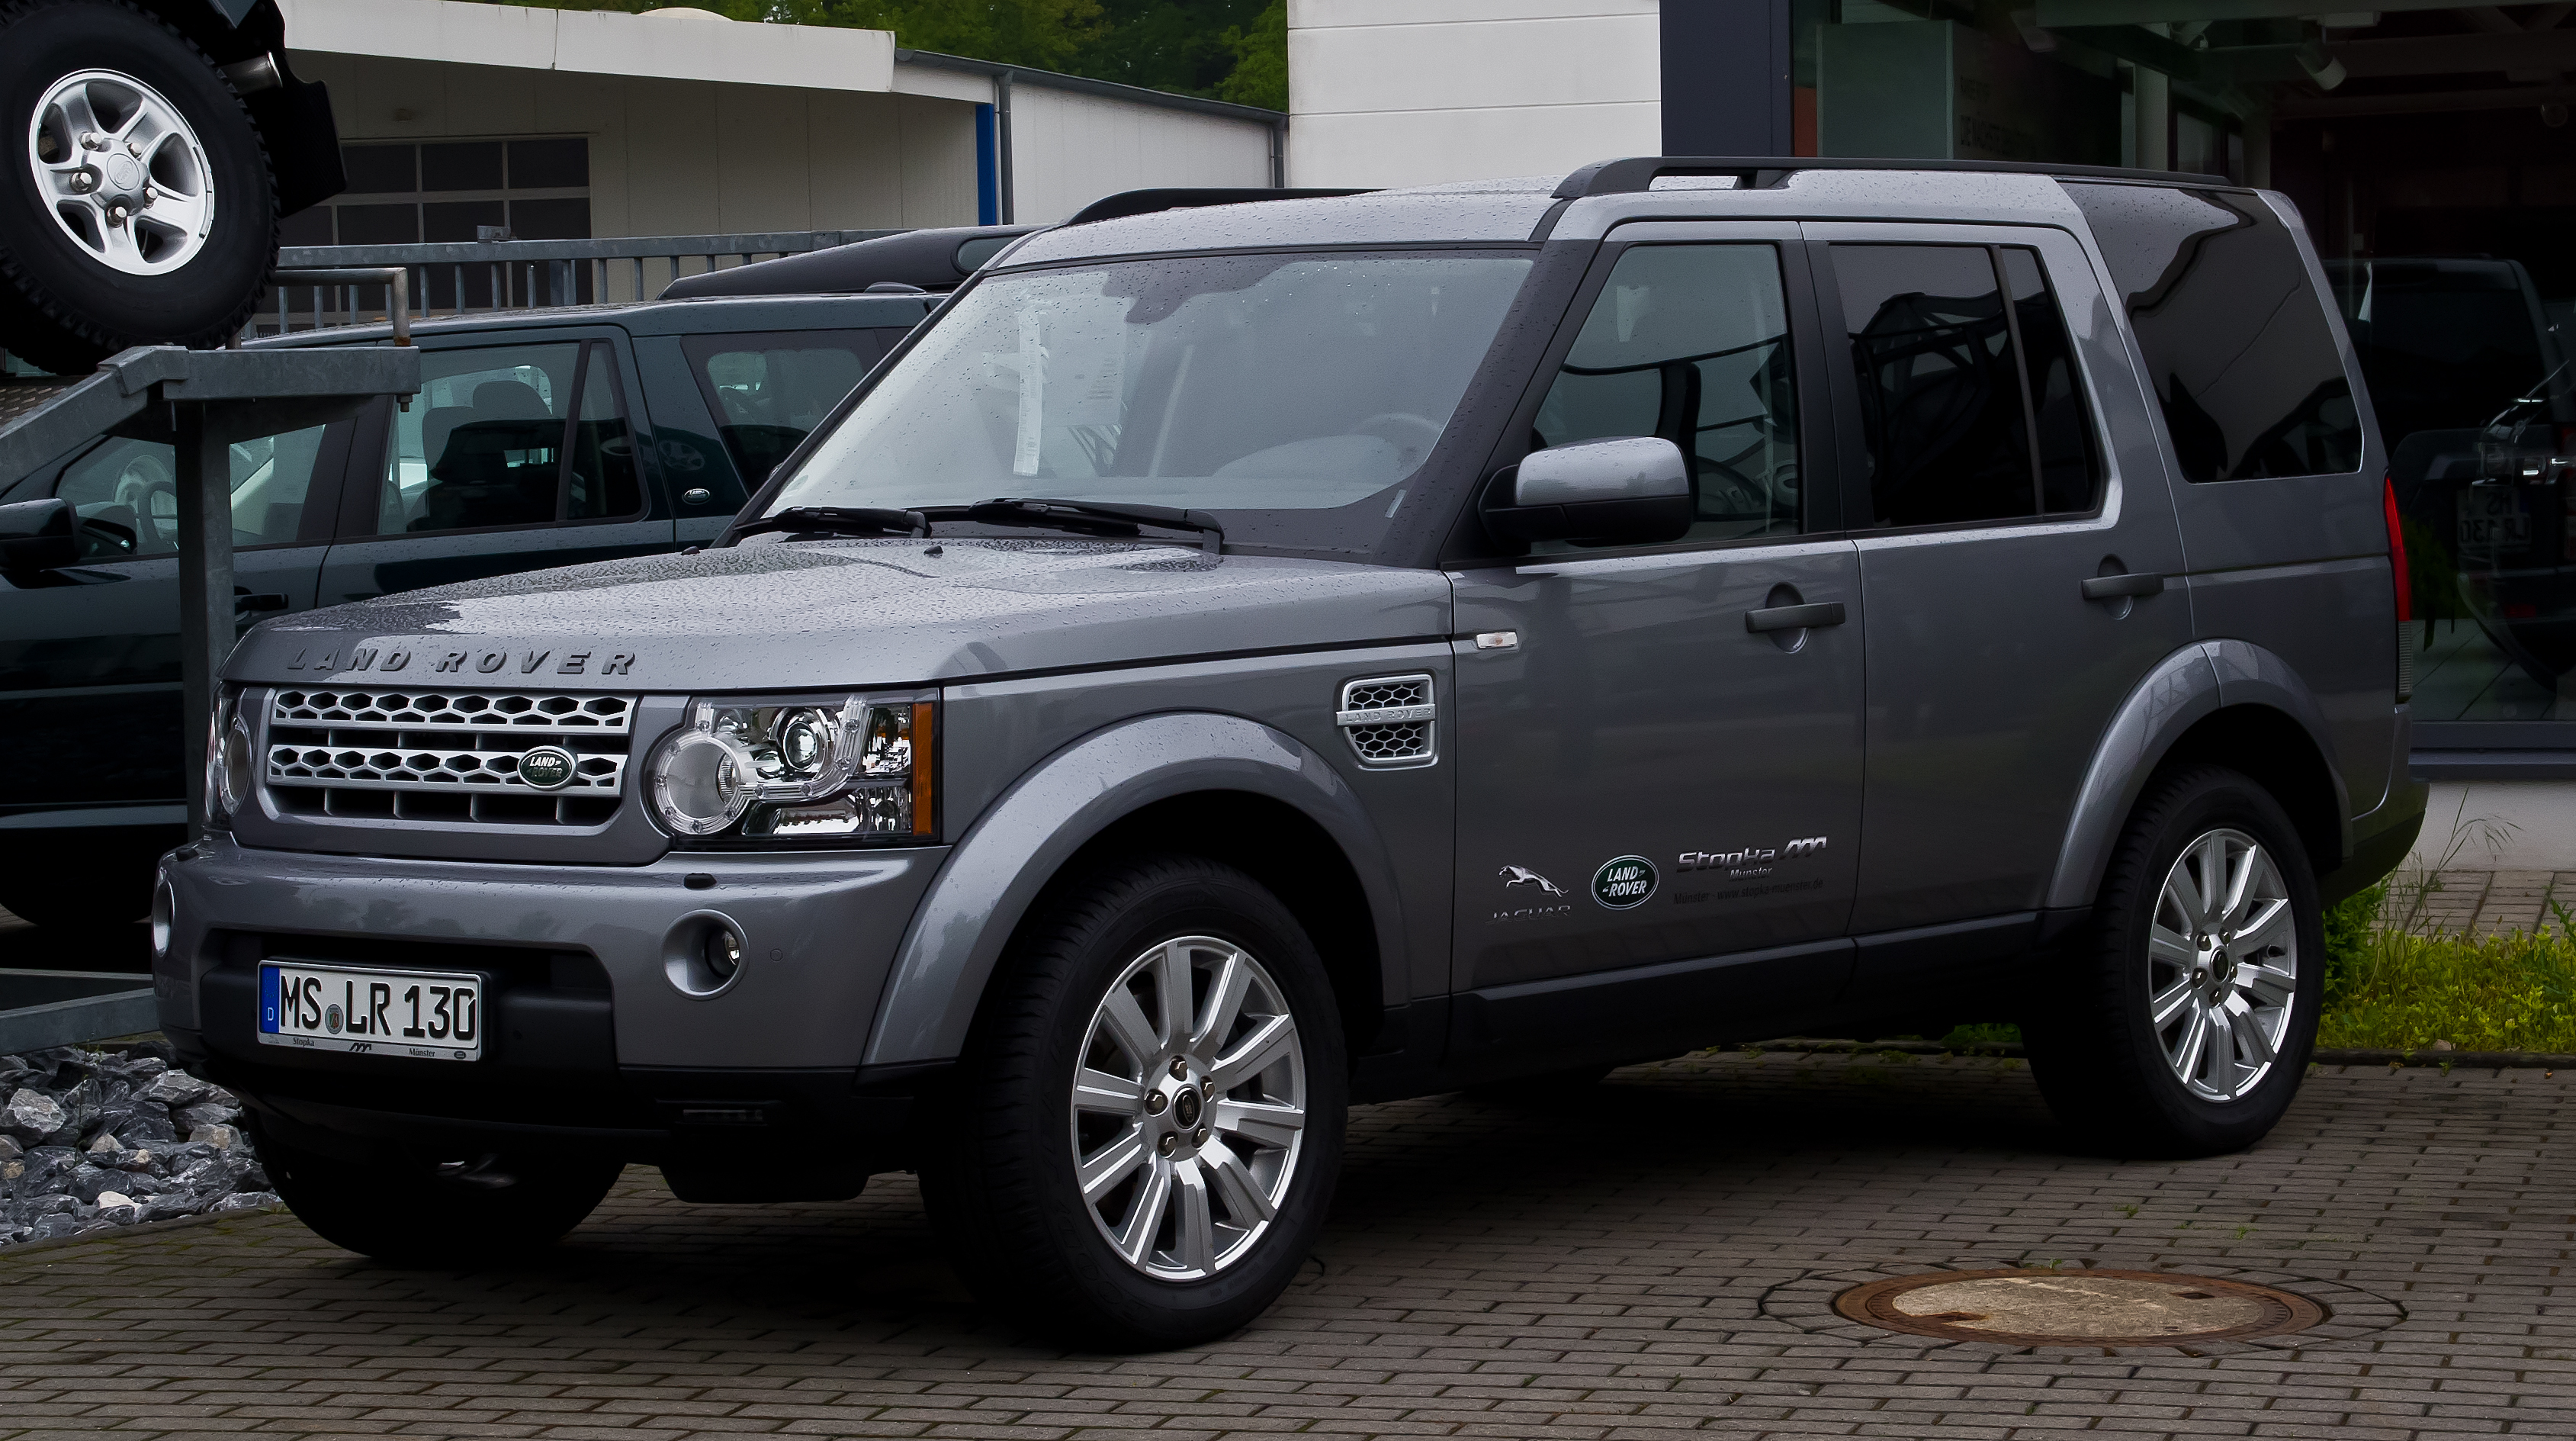 file land rover discovery sdv6 hse iv frontansicht 17 mai 2013 m wikipedia. Black Bedroom Furniture Sets. Home Design Ideas